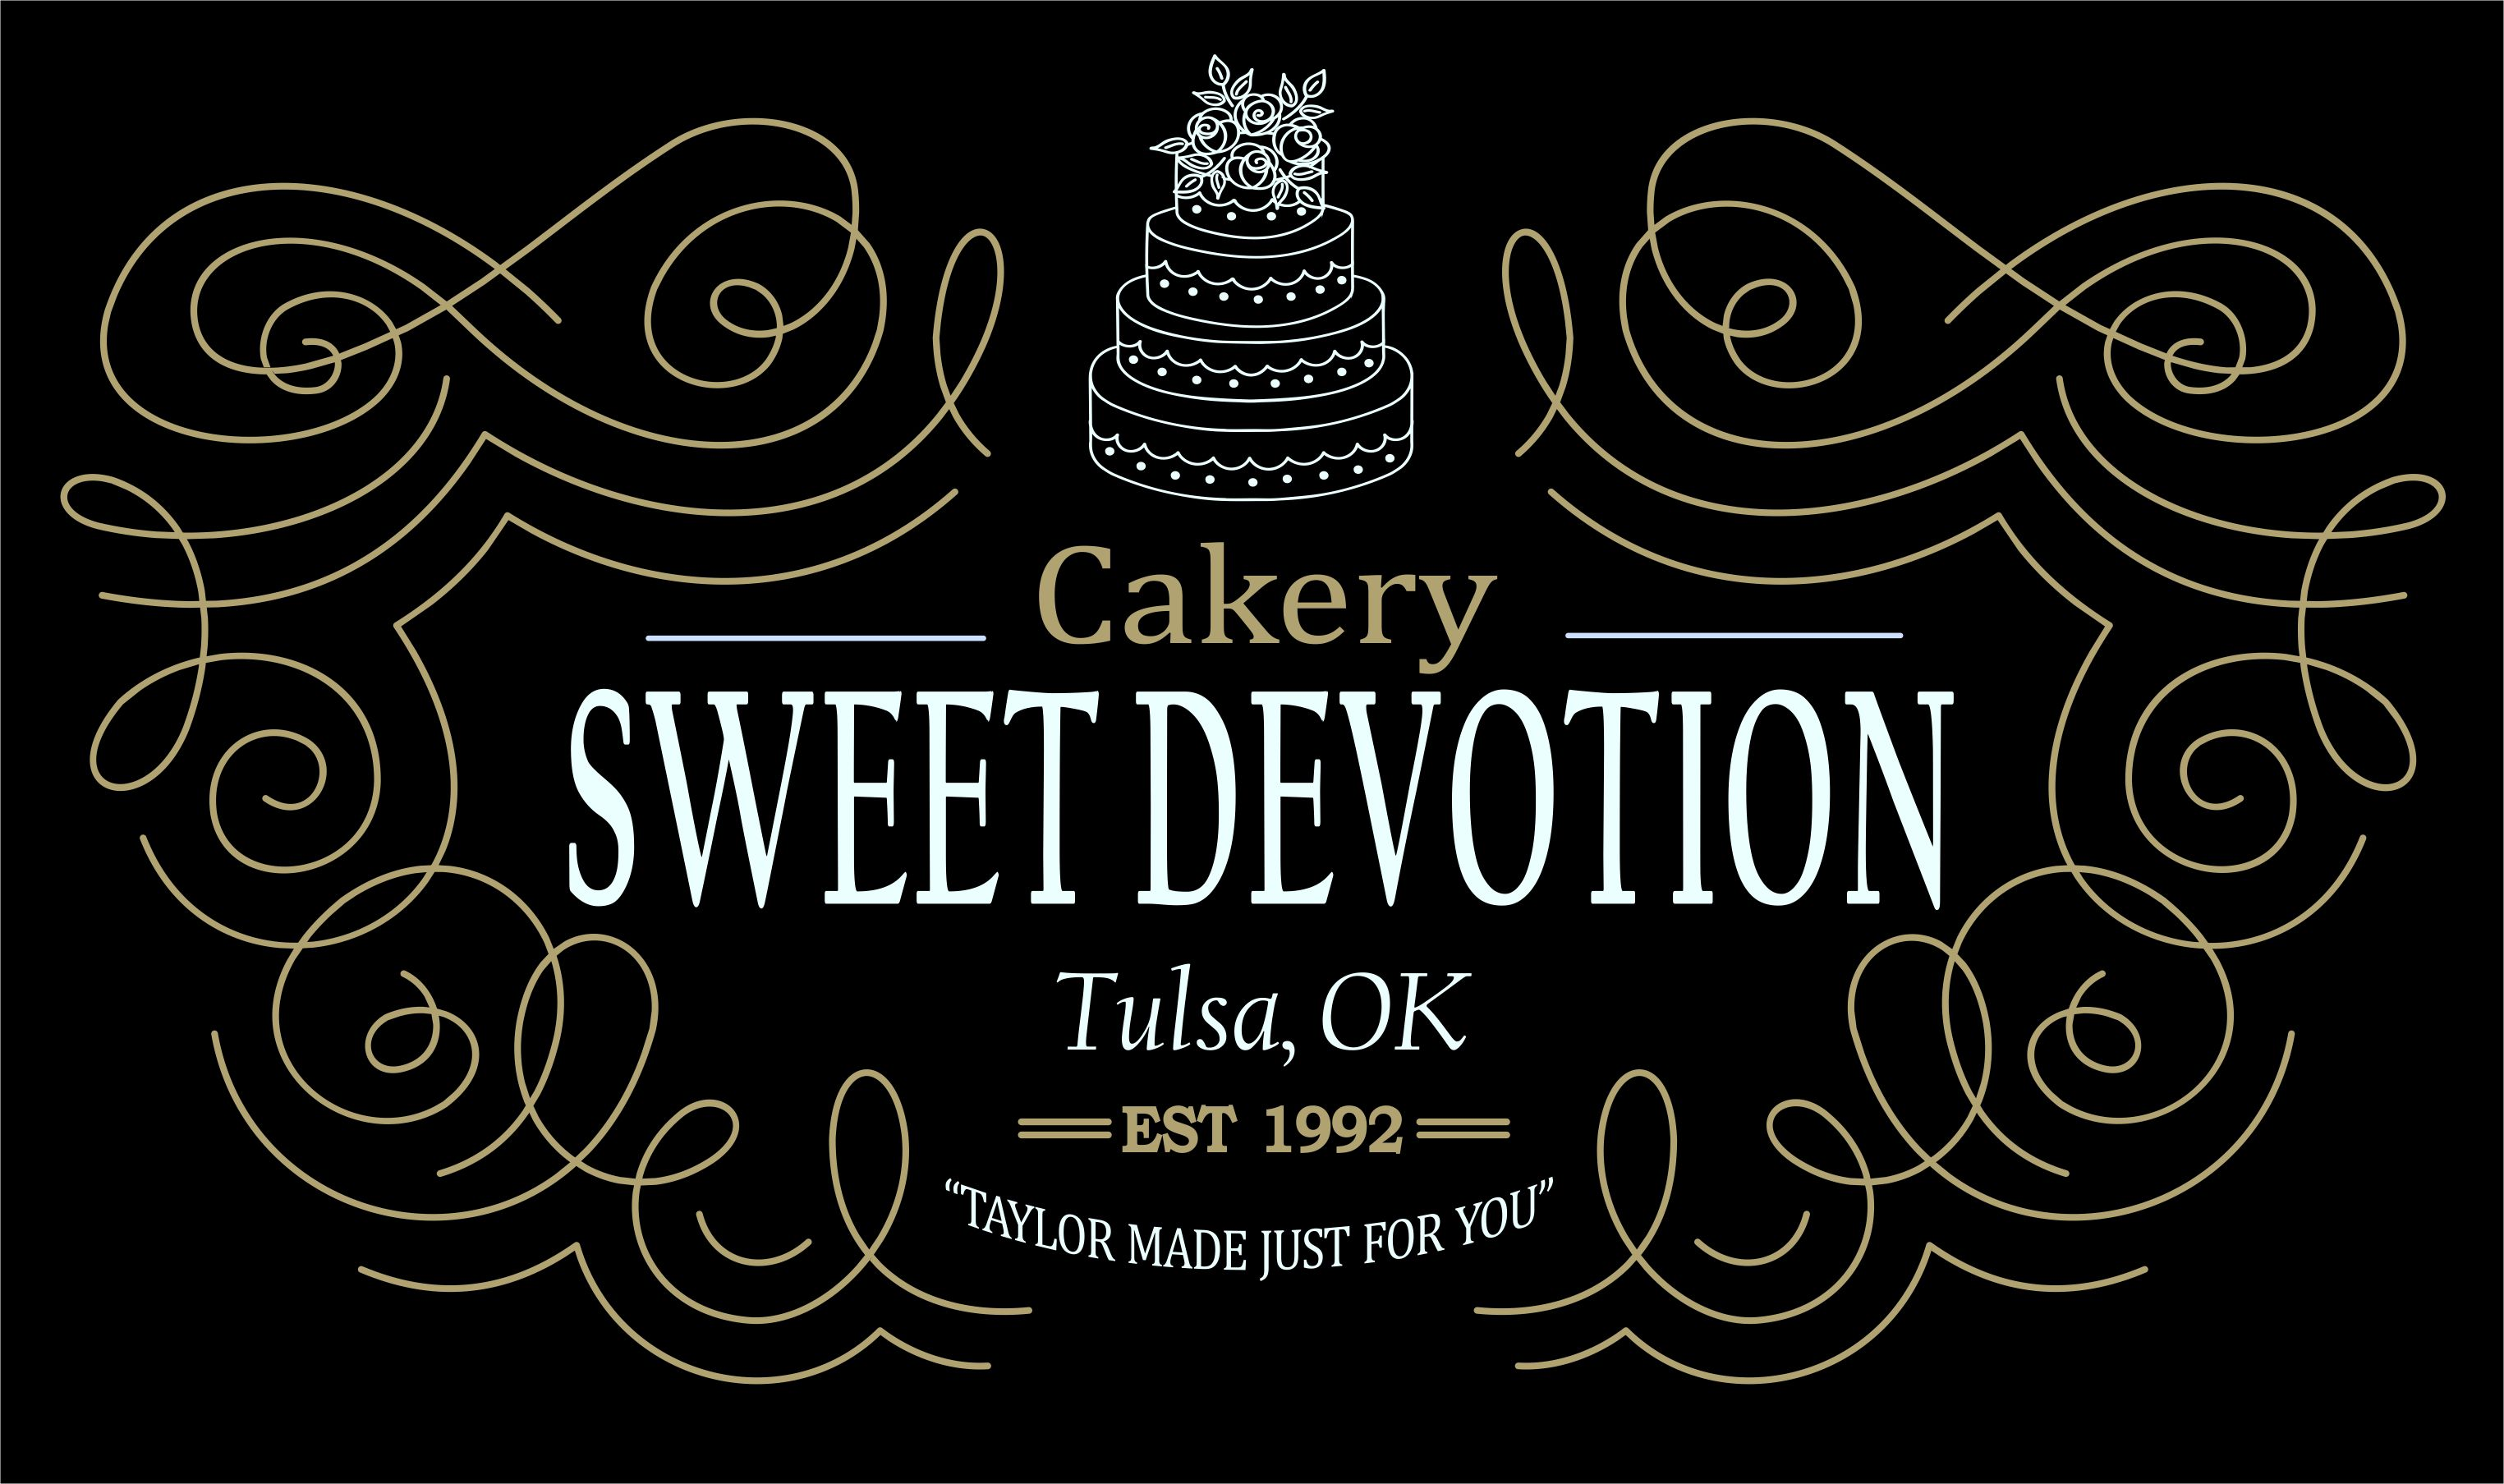 Sweet Devotion Cakery Desserts, Cakes